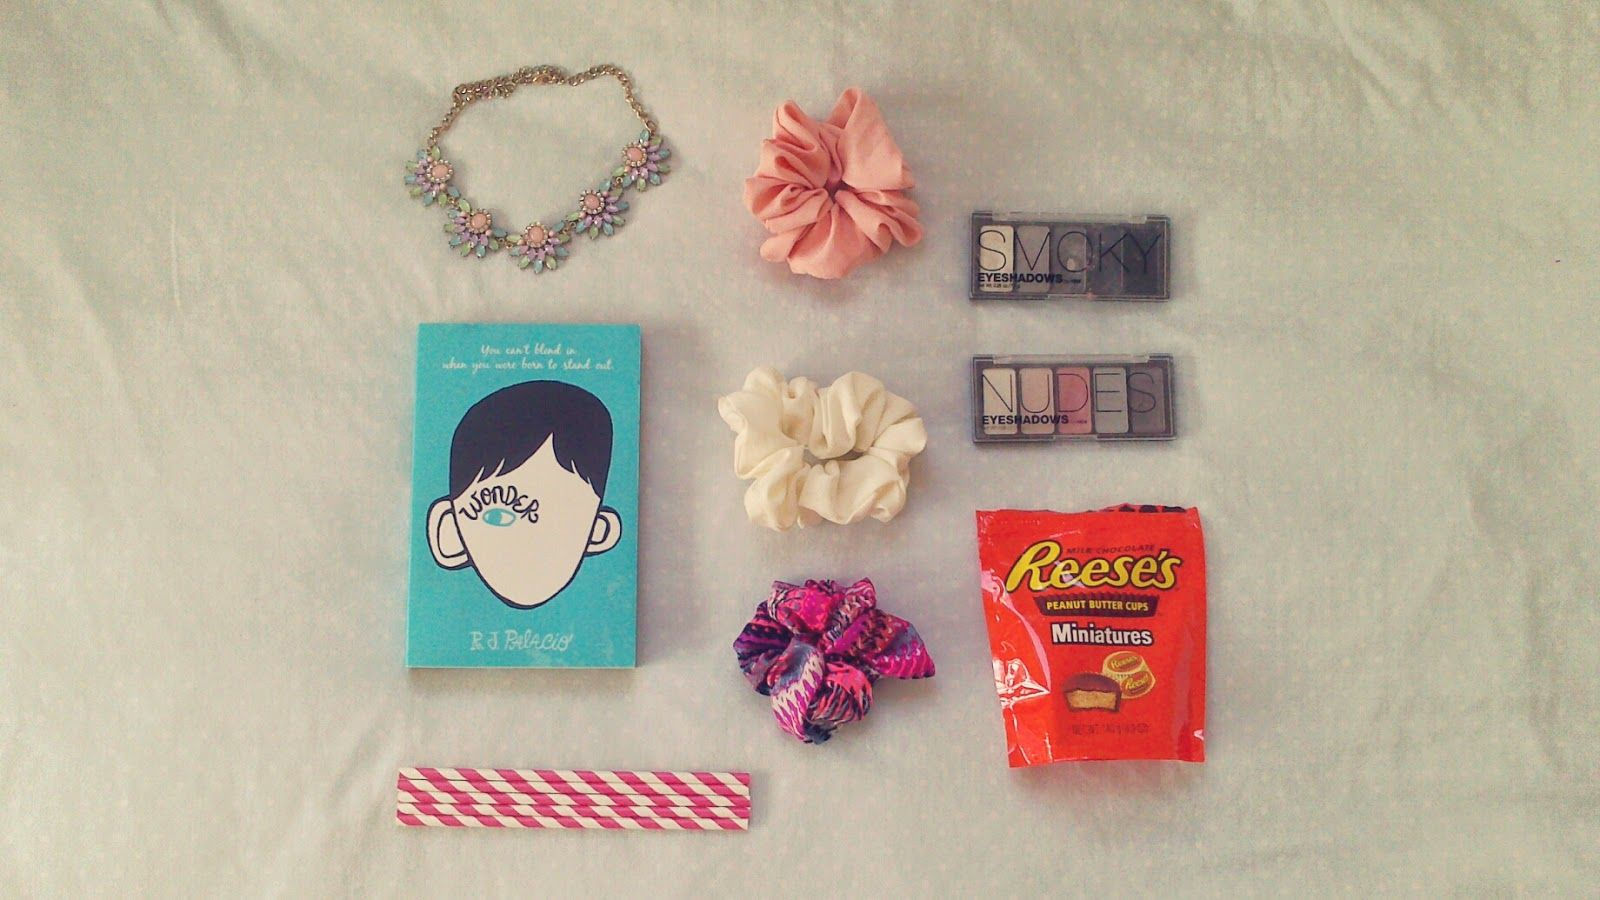 July Favourites: Hair scrunchies, statement necklaces and American chocolates all in this months favourites!